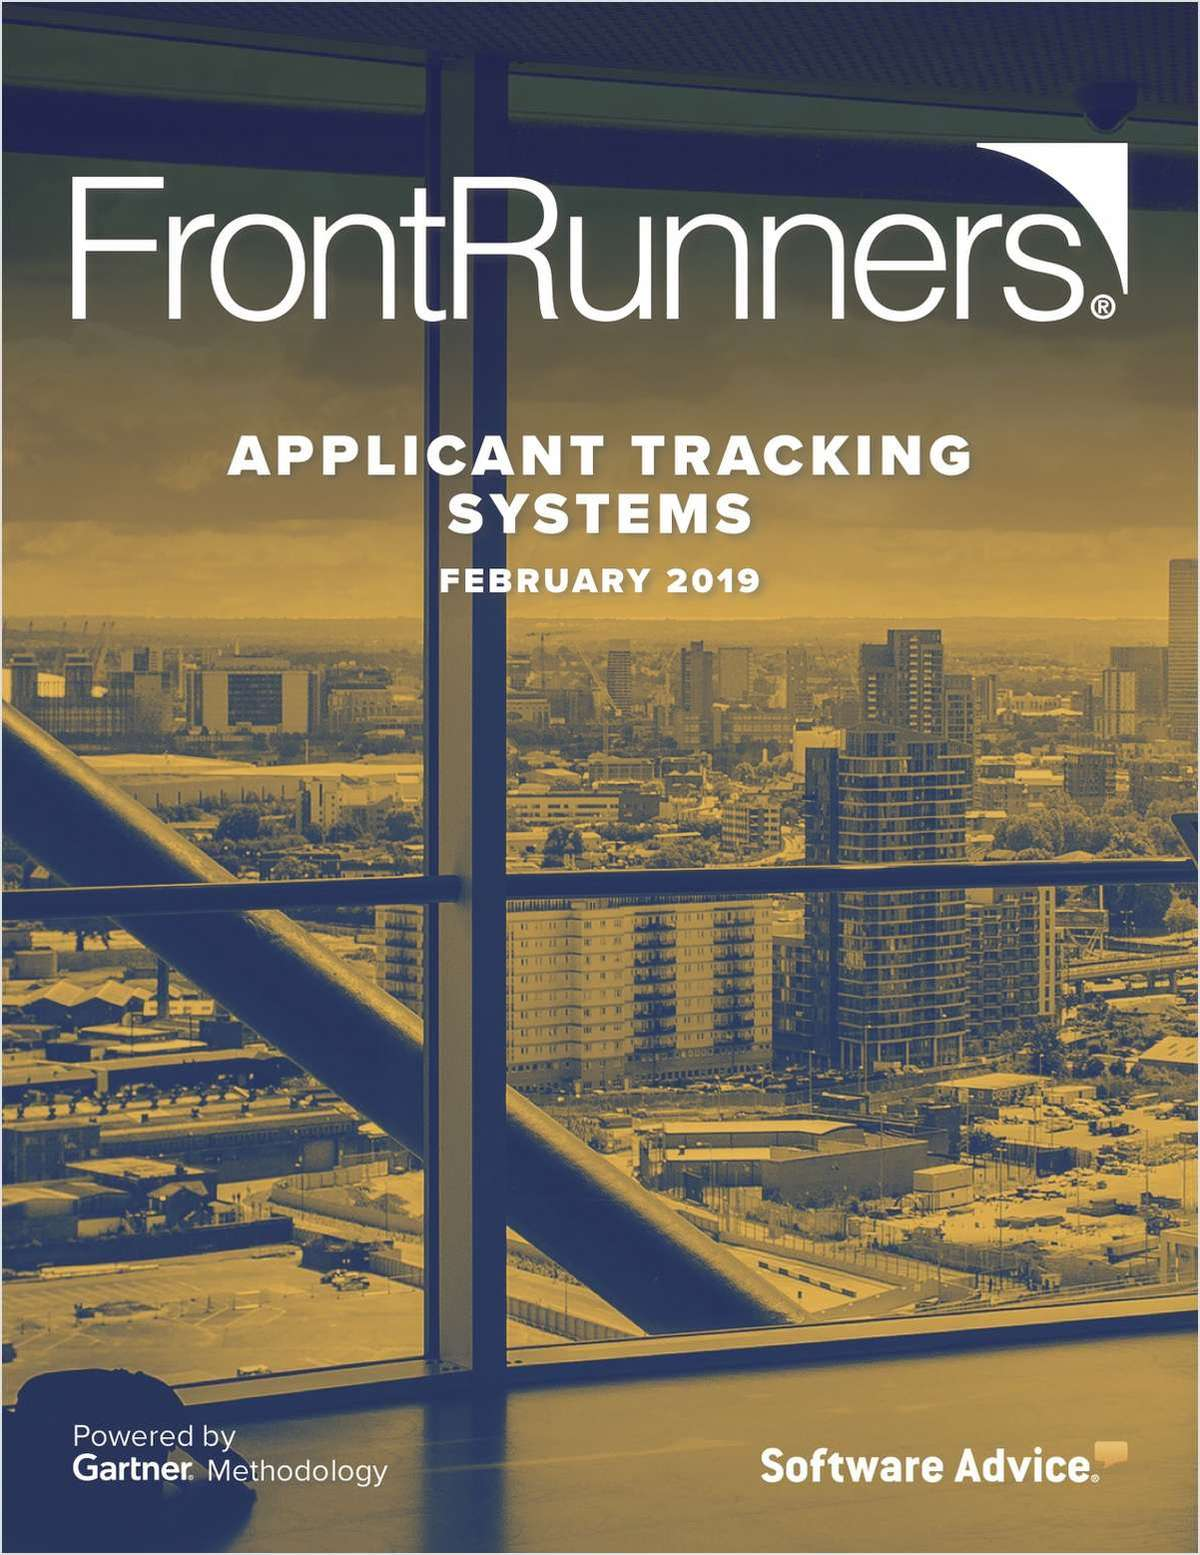 Top Rated FrontRunners for Applicant Tracking Software